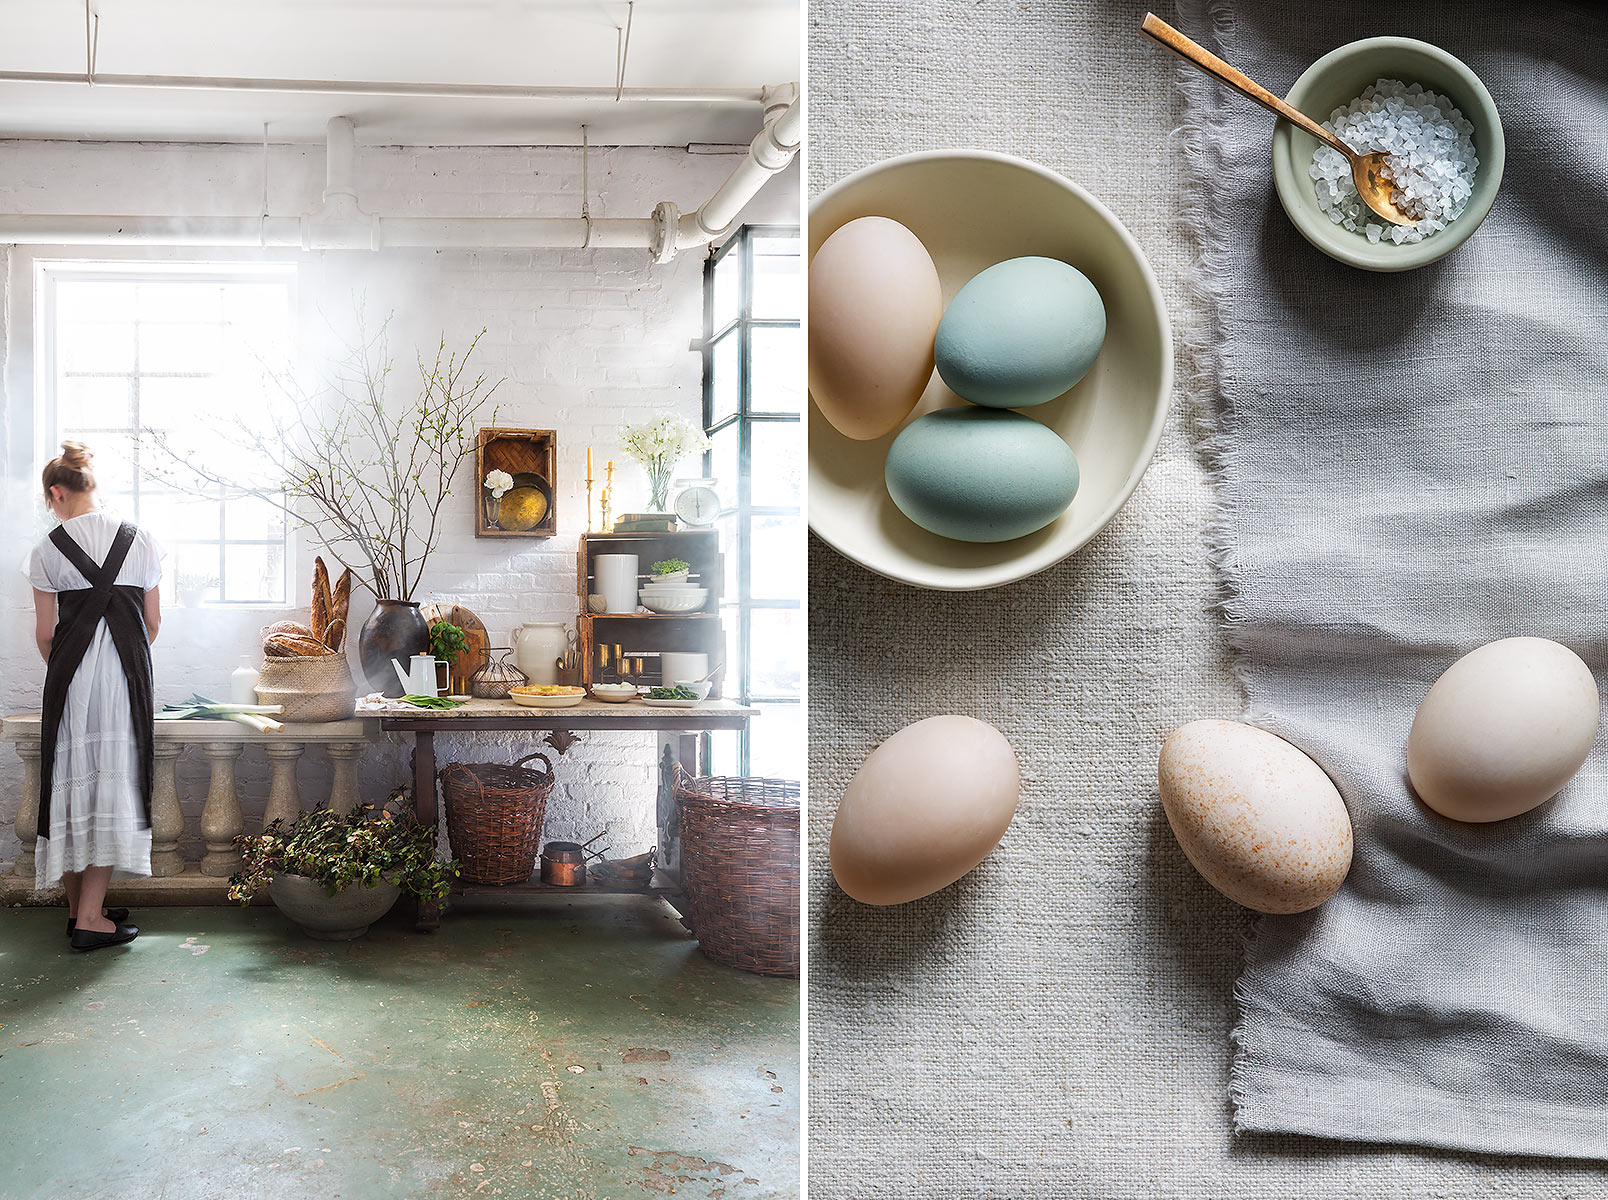 Lifestyle Photography Toronto Kitchen Eggs